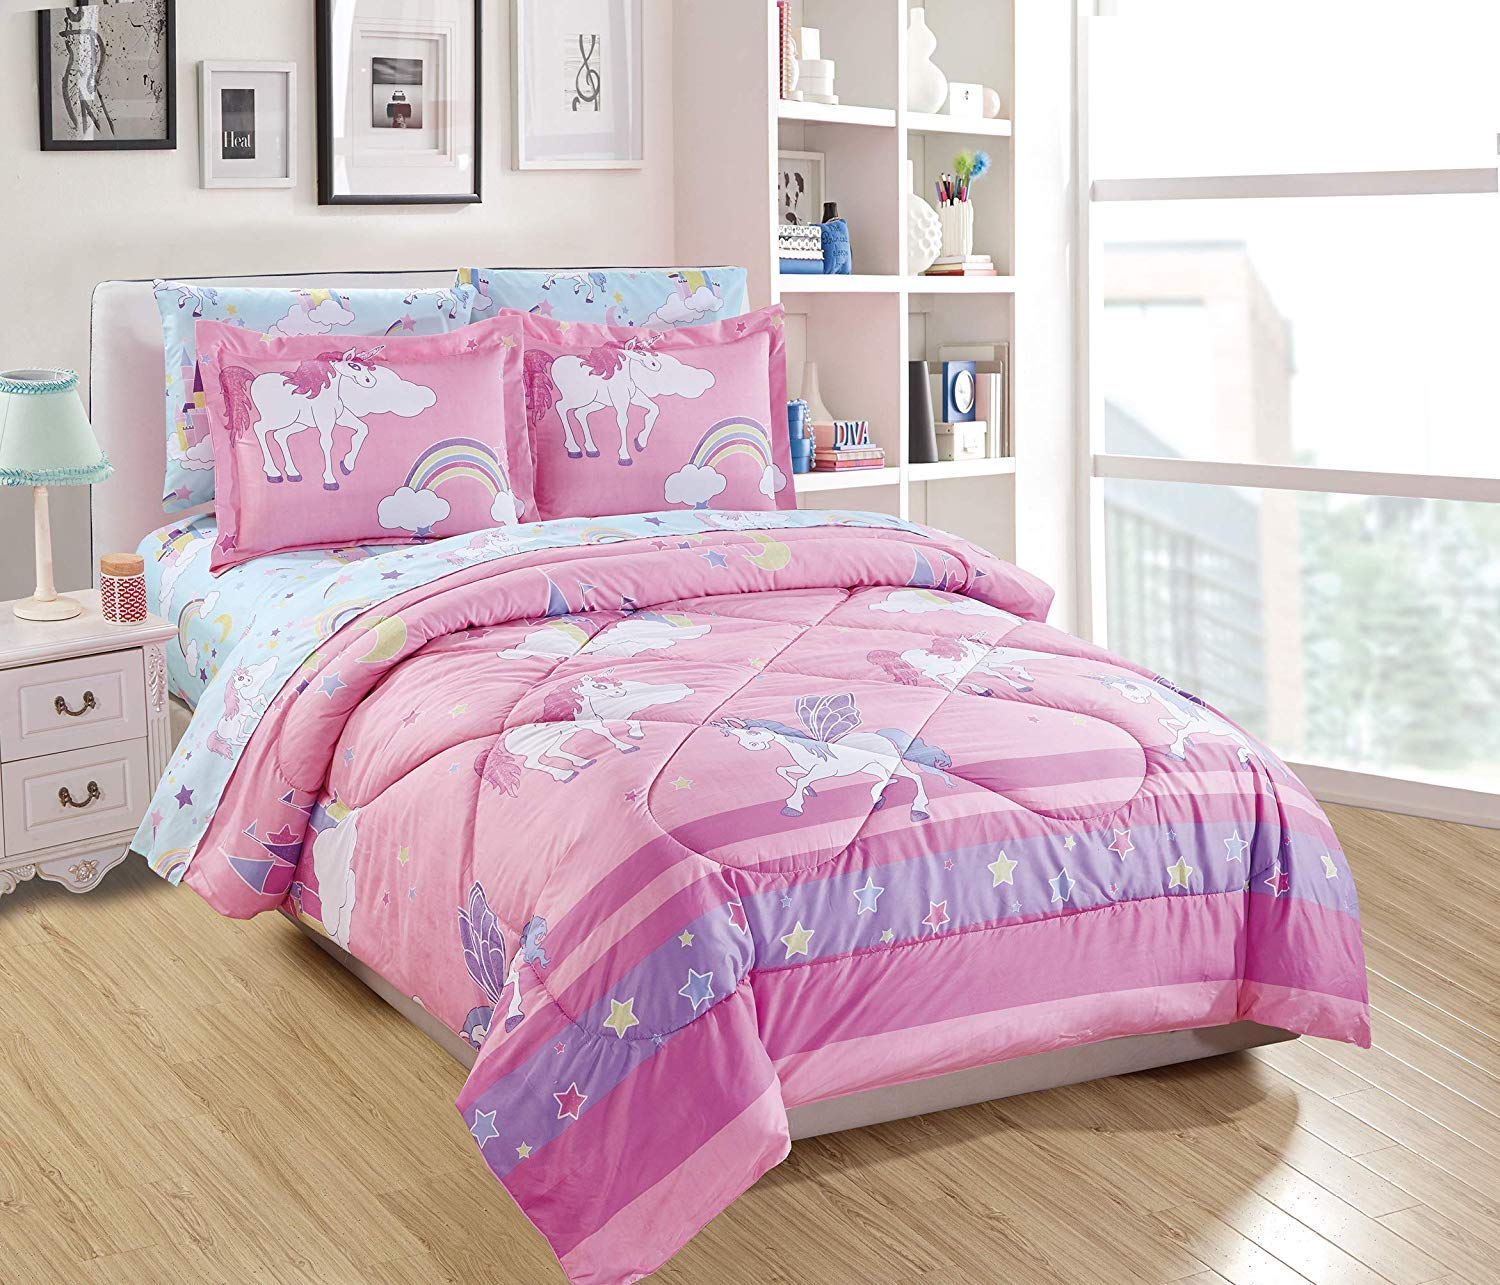 Elegant Homes Multicolor Purple Pink White Blue Unicorn Rainbow Castle Design 7 Piece Comforter Bedding Set for Girls/Kids Bed in a Bag with Sheet Set # Unicorn Blue (Queen Size)